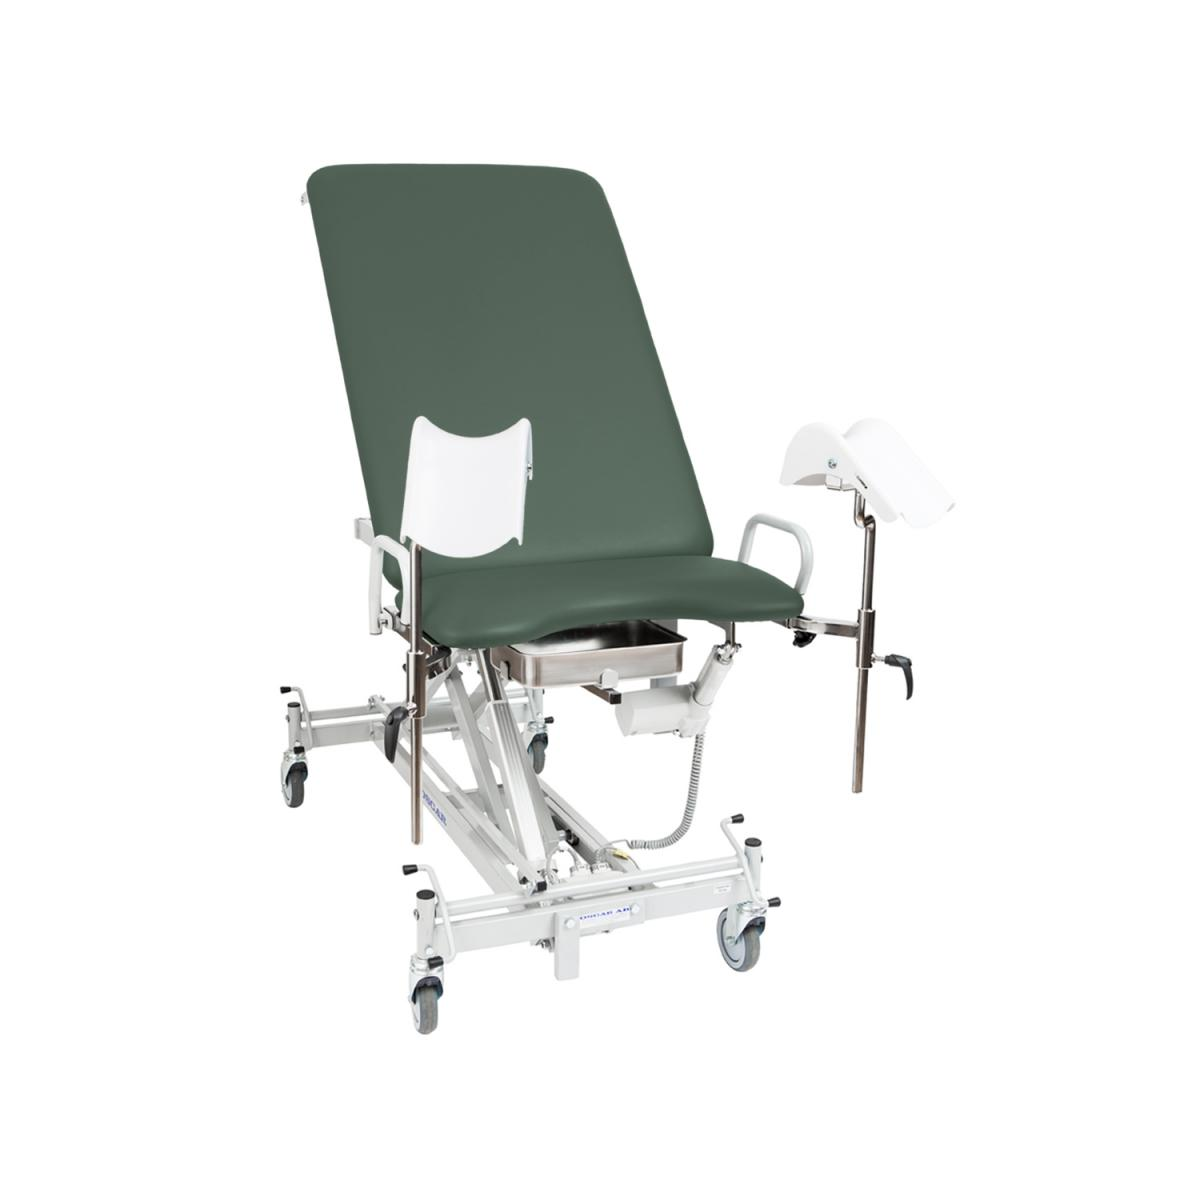 Gynaecological examination chair 036